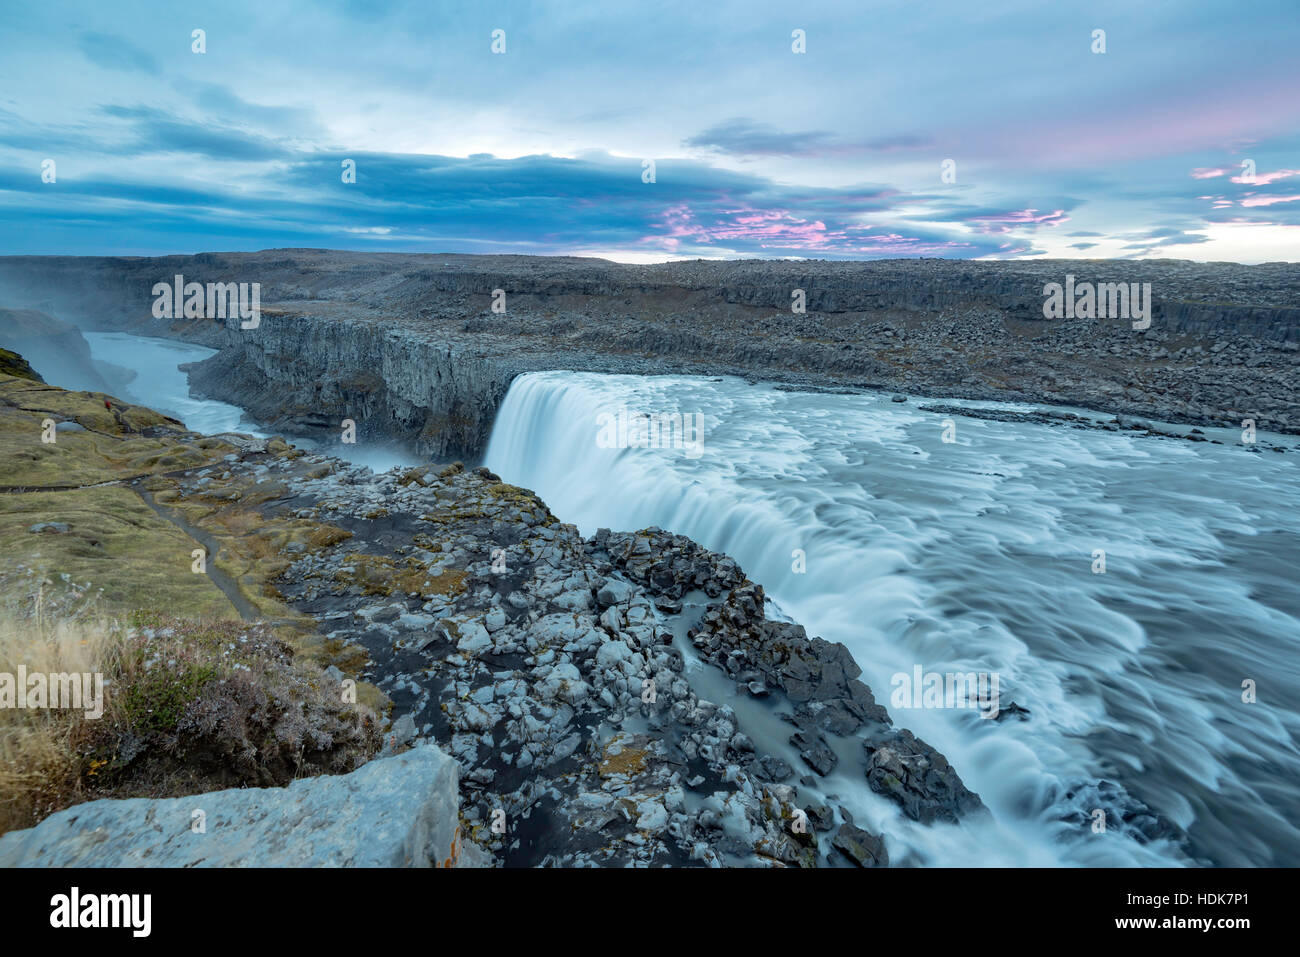 Dettifoss. Situated in Vatnajokull N.P. in Northeast Iceland, it's the most powerful waterfall in Europe. Photo - Stock Image